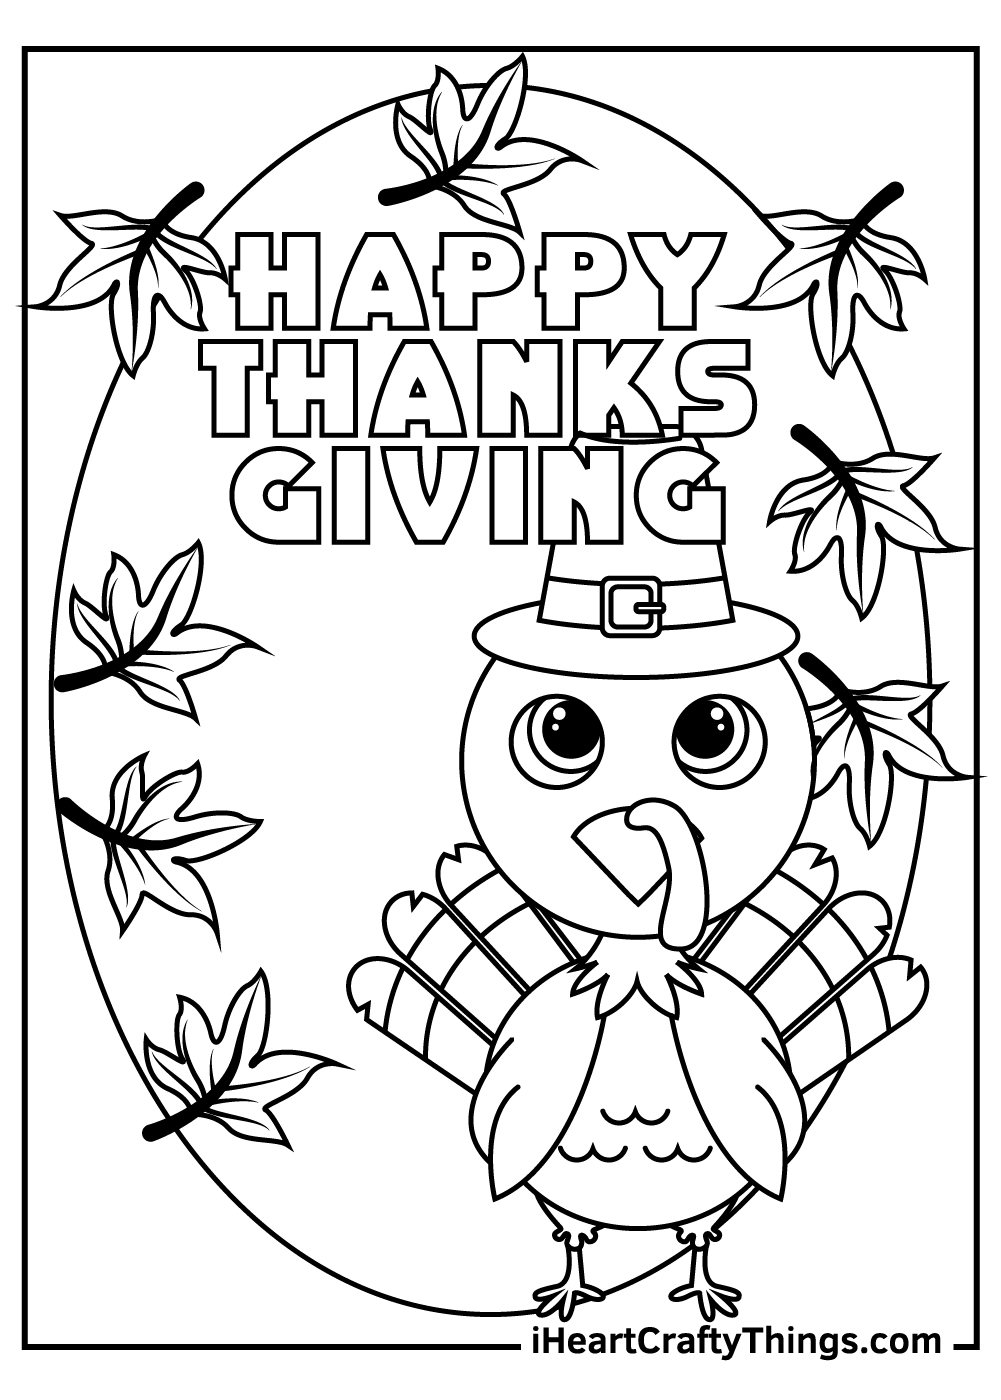 happy thanksgiving cute turkey coloring pages free download